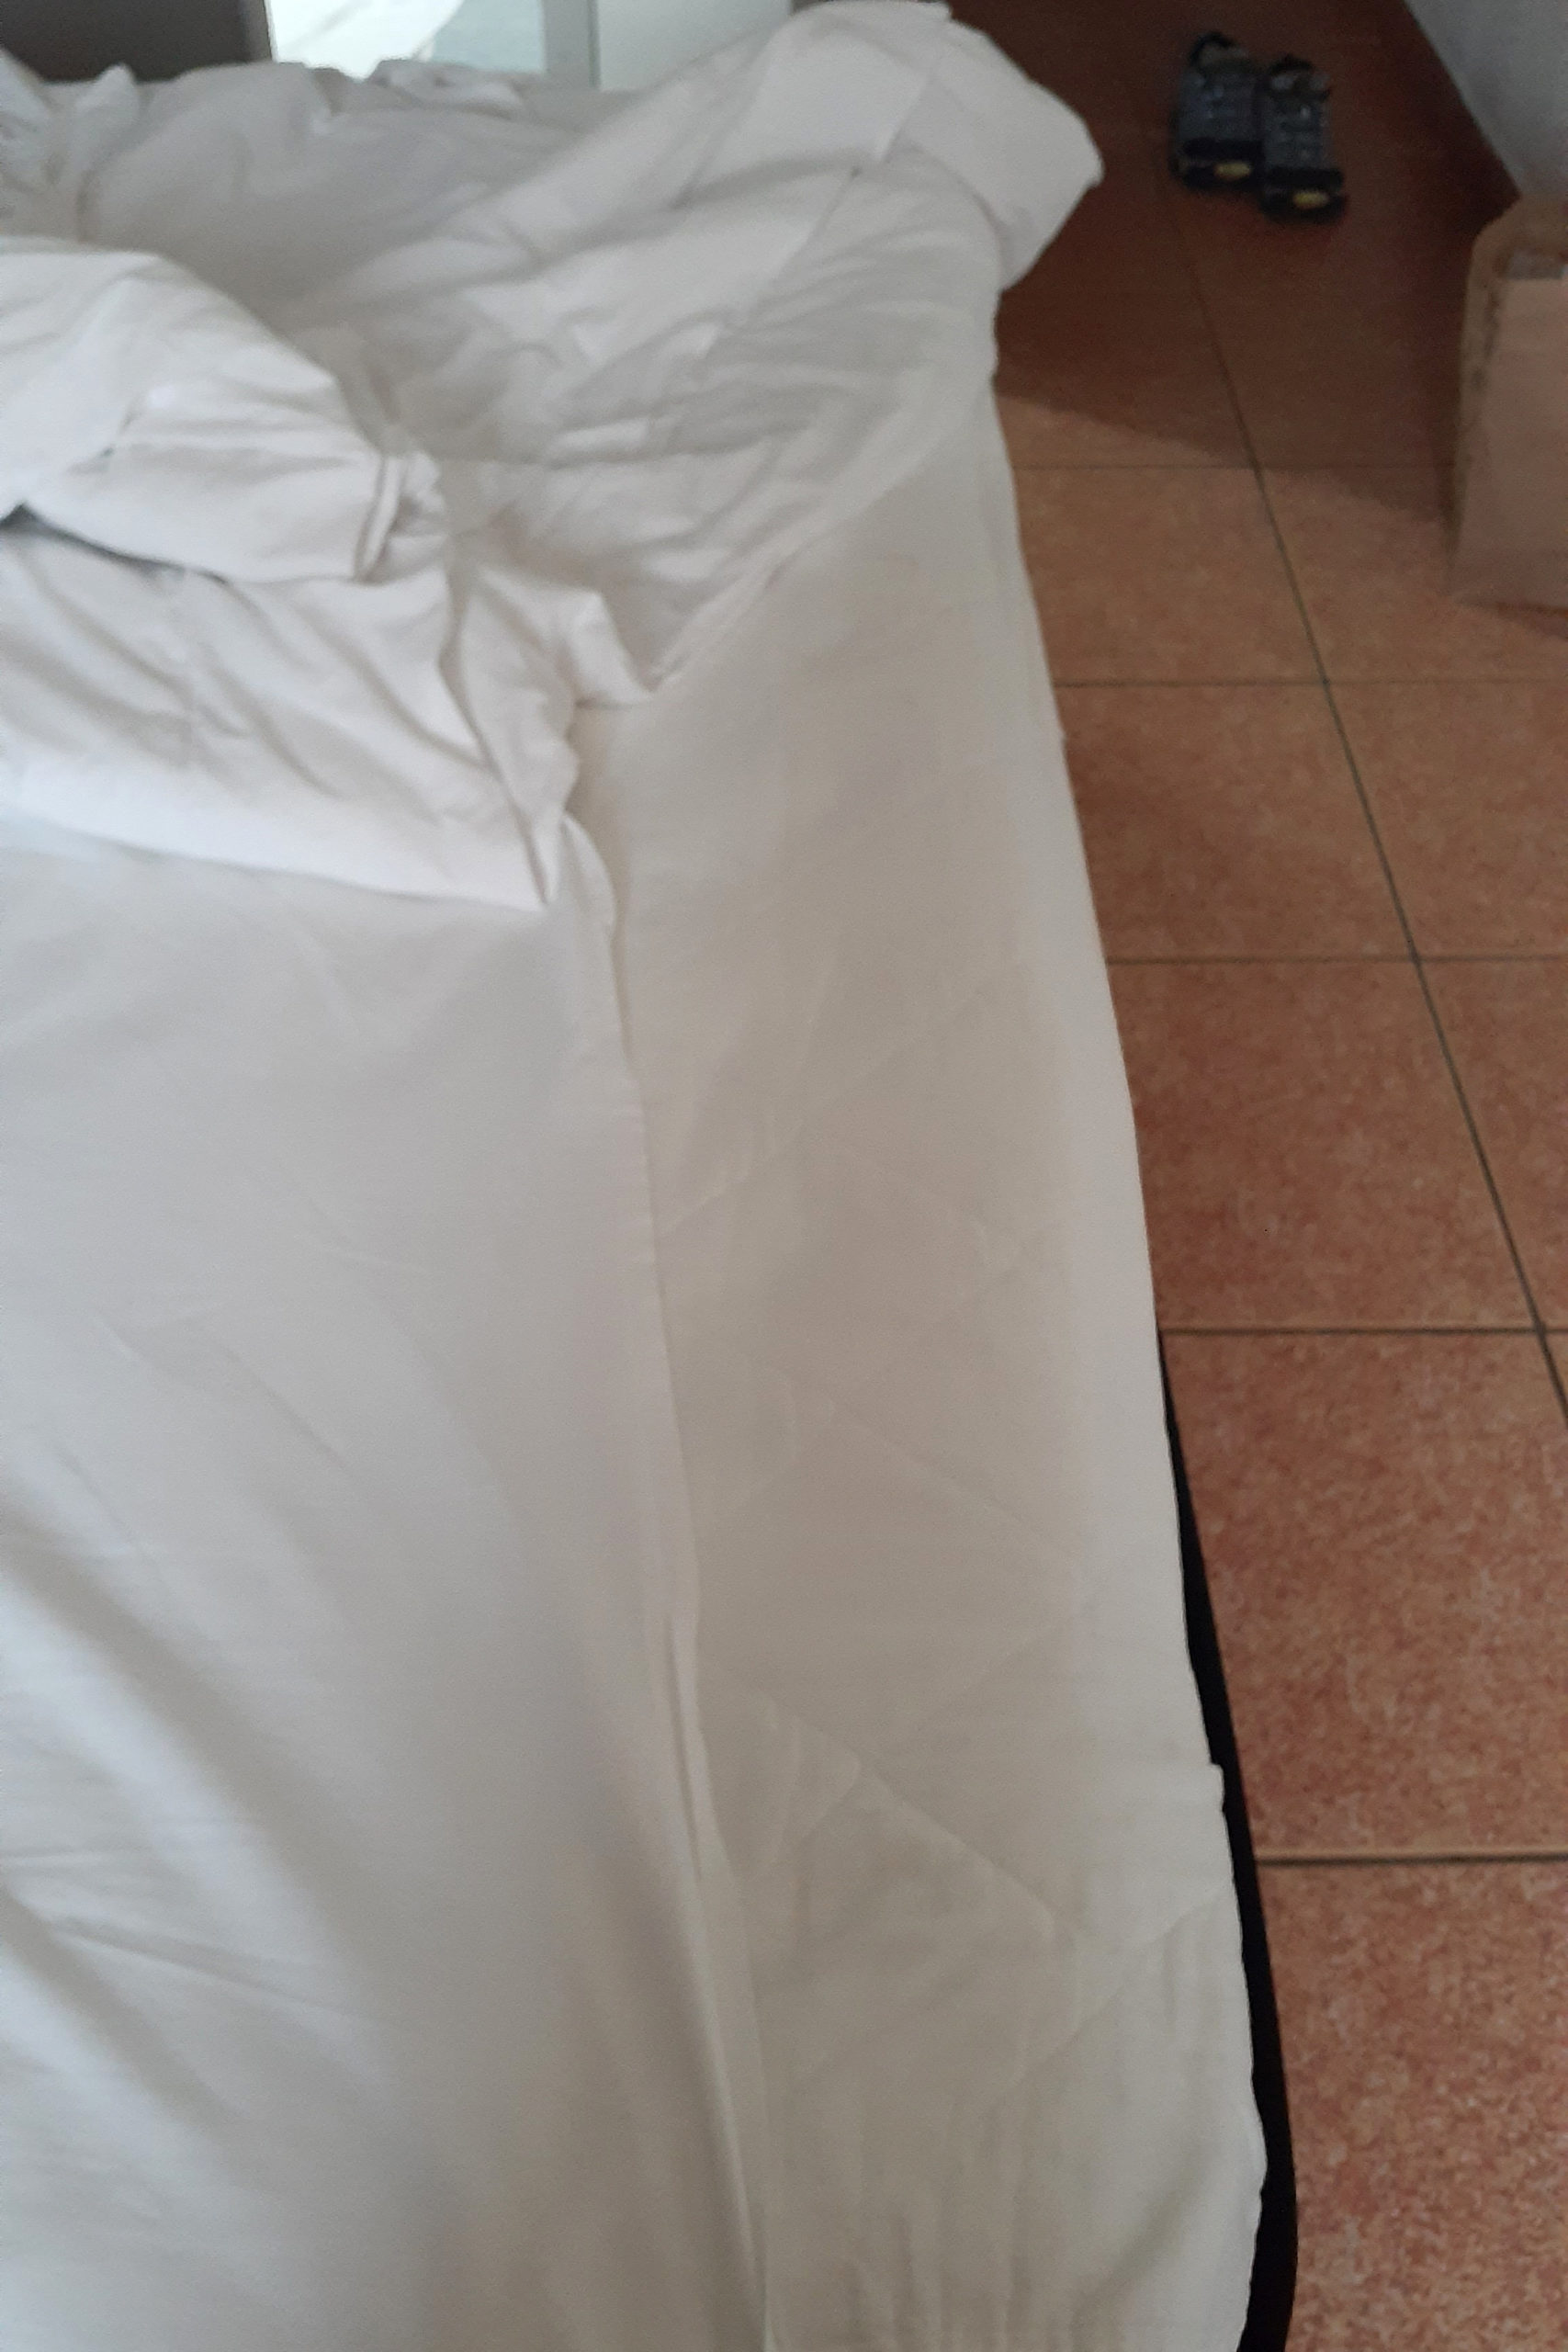 Typical hotel bed issue: flat sheet to small for the bed...